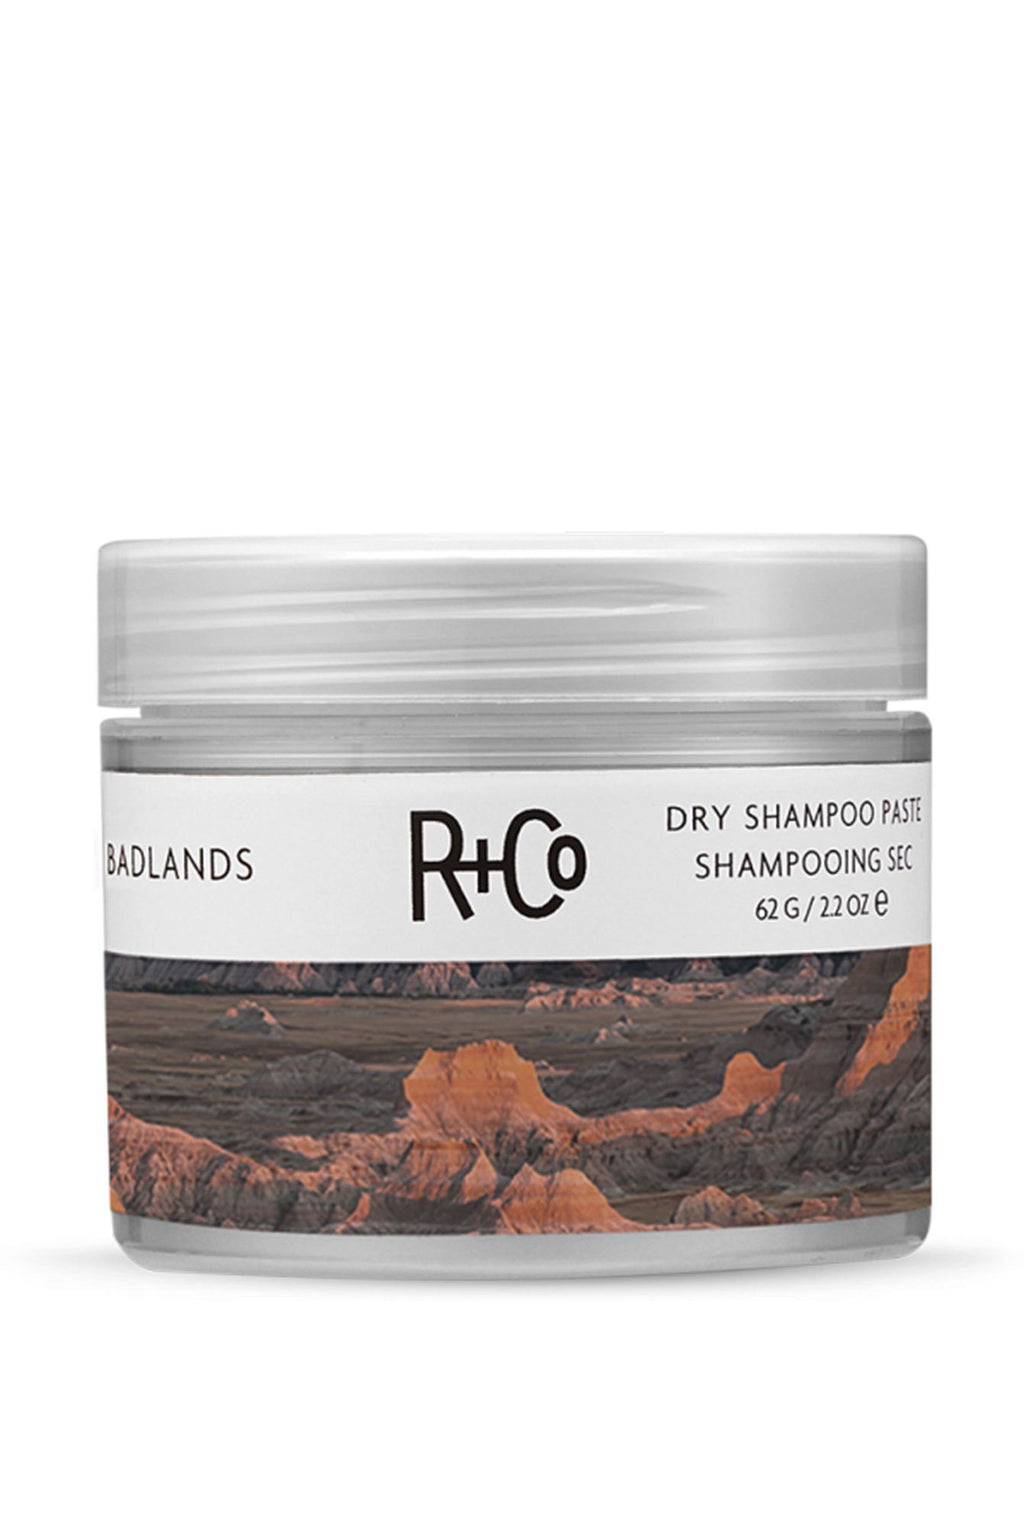 R+Co | Badlands Dry Shampoo Paste